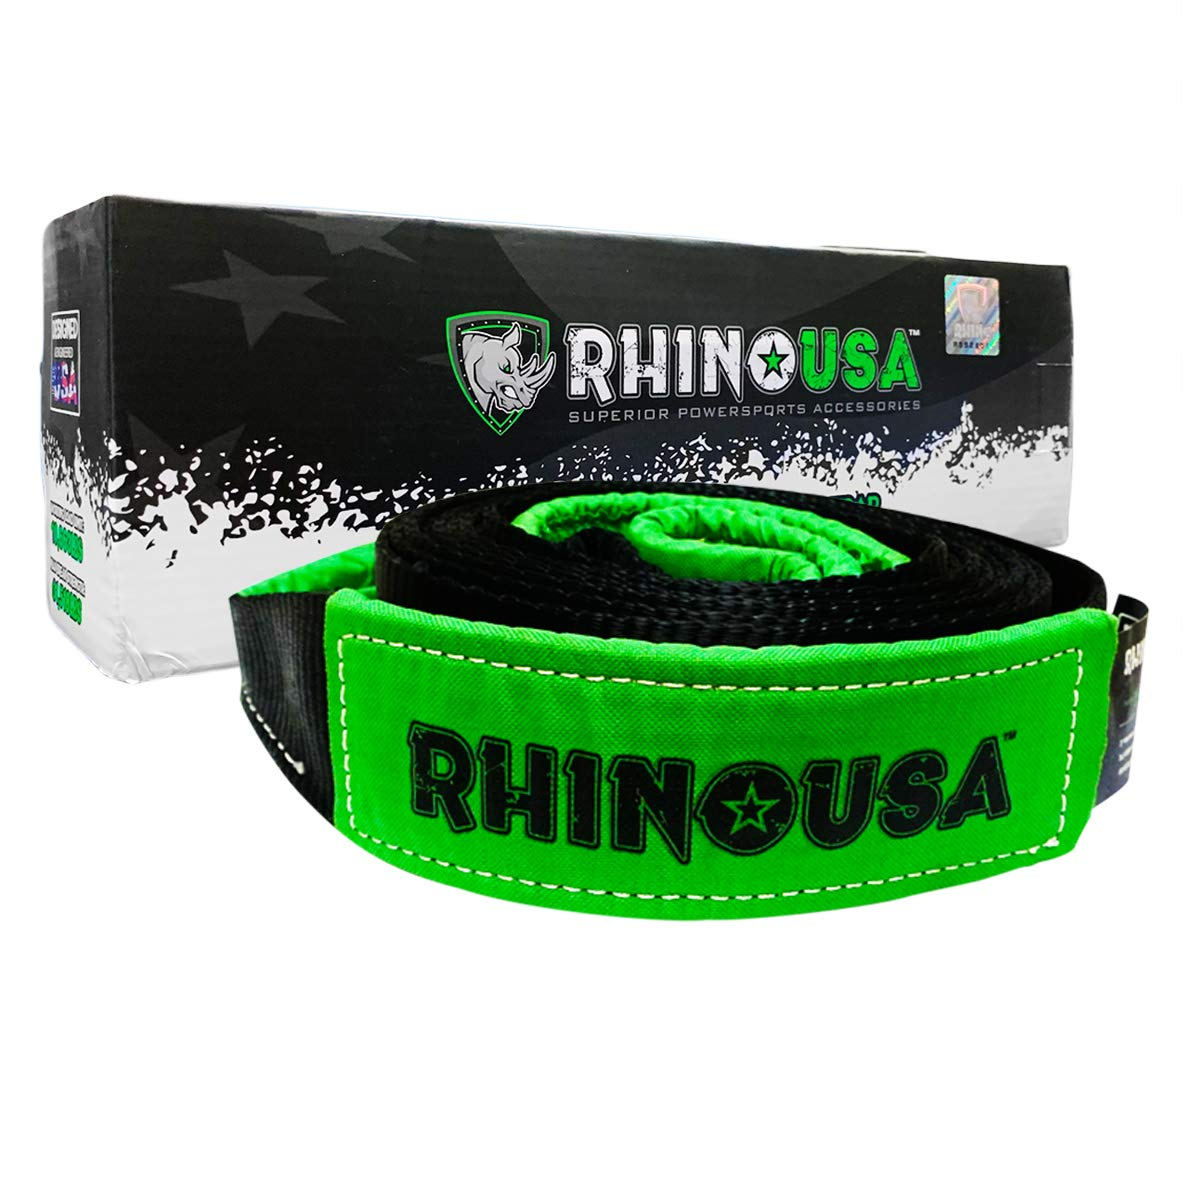 Rhino USA Tree Saver Winch Strap 3'' x 8' - Lab Tested 31,518lb Break Strength - Triple Reinforced Loop End to Ensure Peace of Mind - Emergency Off Road Recovery Tow Rope - Unlimited!